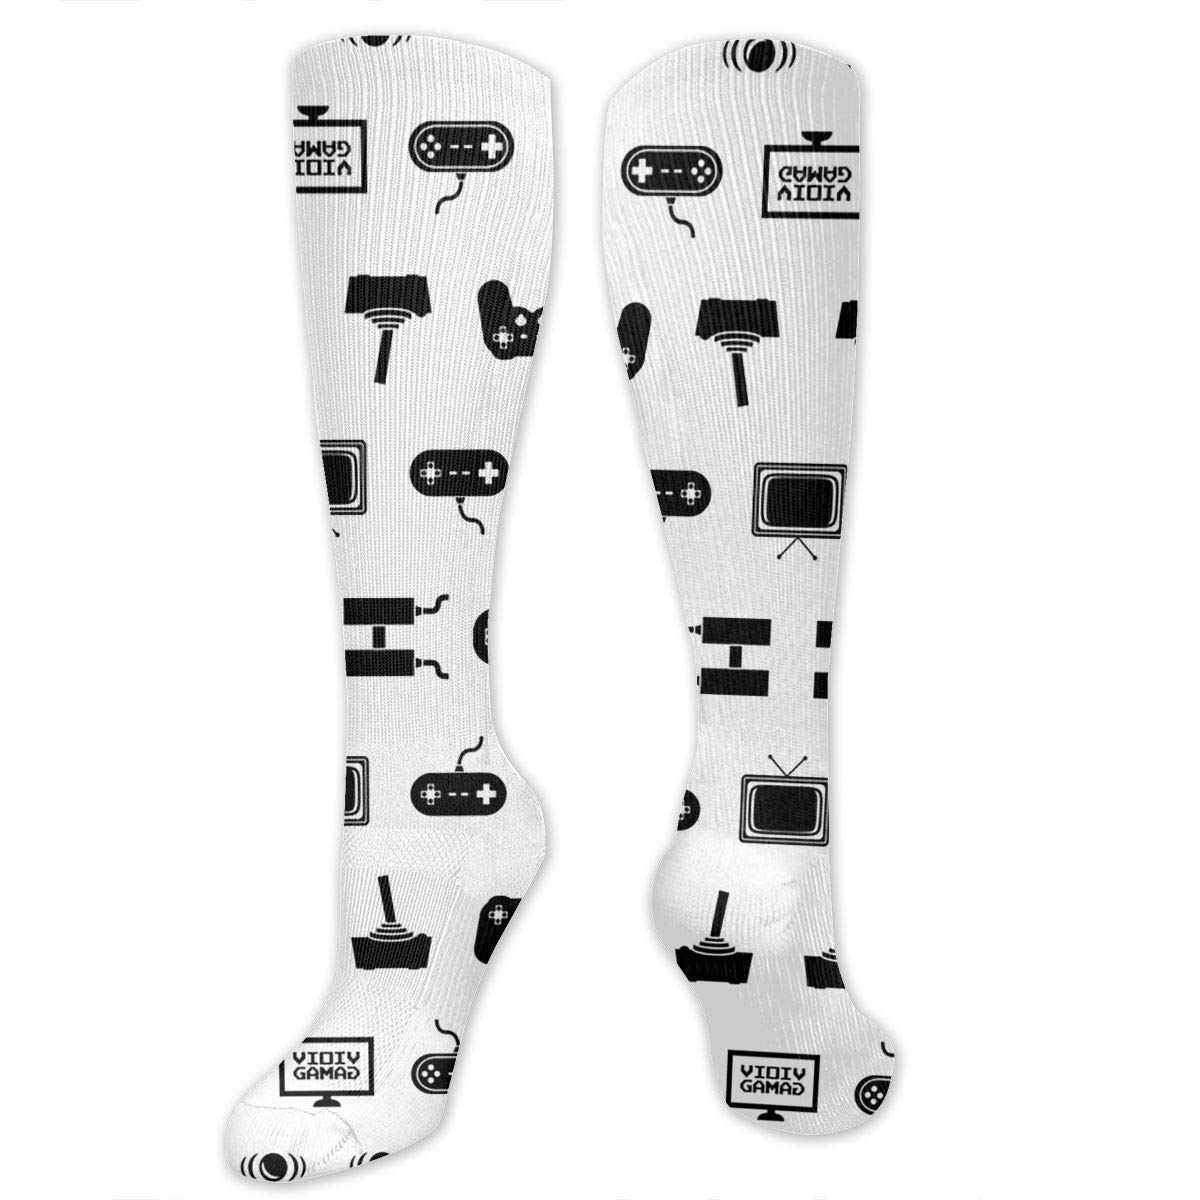 Athletic Ygsdf59 Video Games Compression Socks for Women and Men Travel Varicose Veins Best Medical,for Running